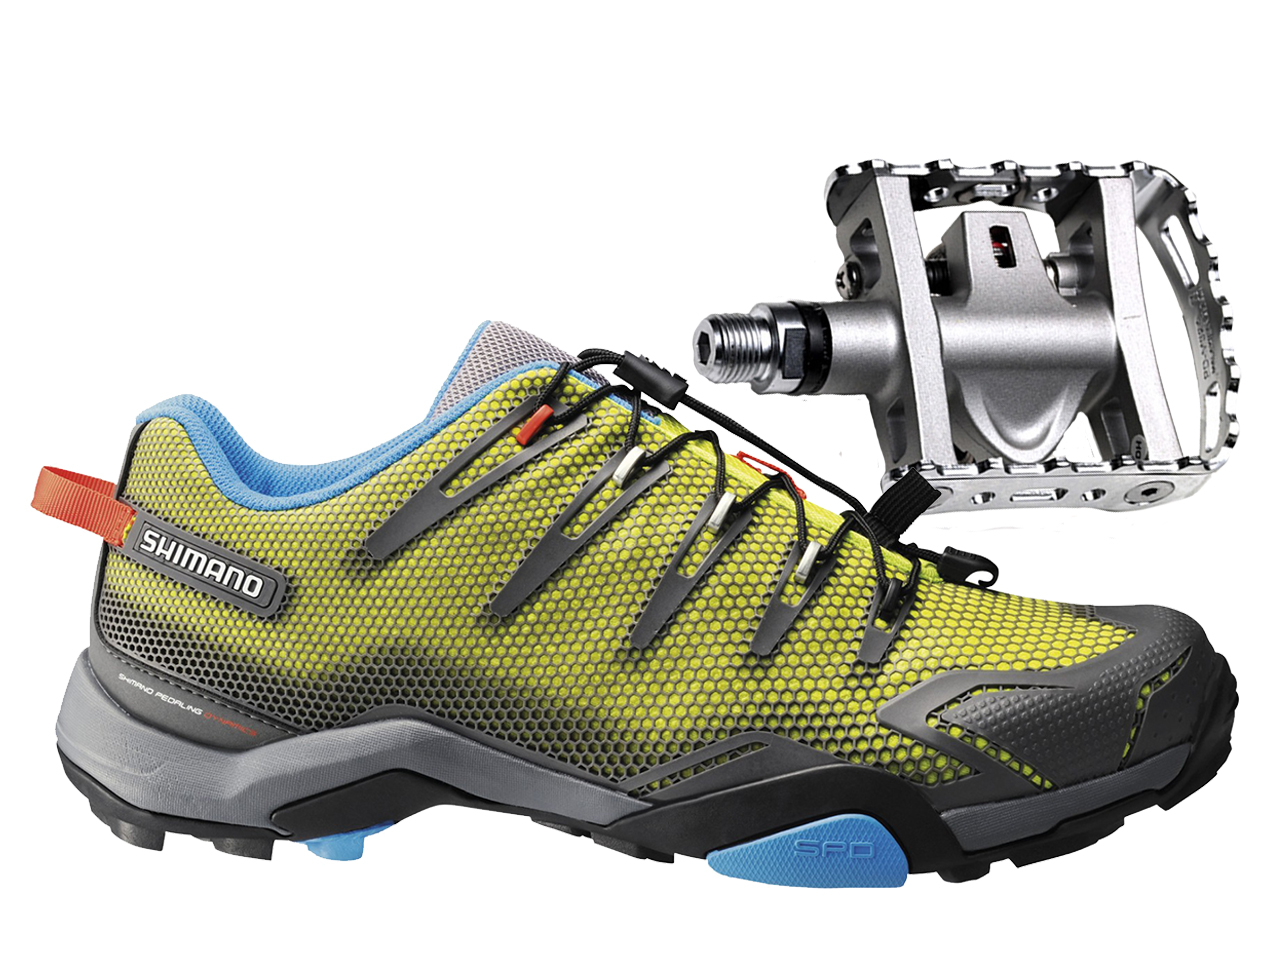 fab317cfa0c Shimano SH-MT44 Shoes & PD-M324 Pedal Combo - Brands Cycle and Fitness